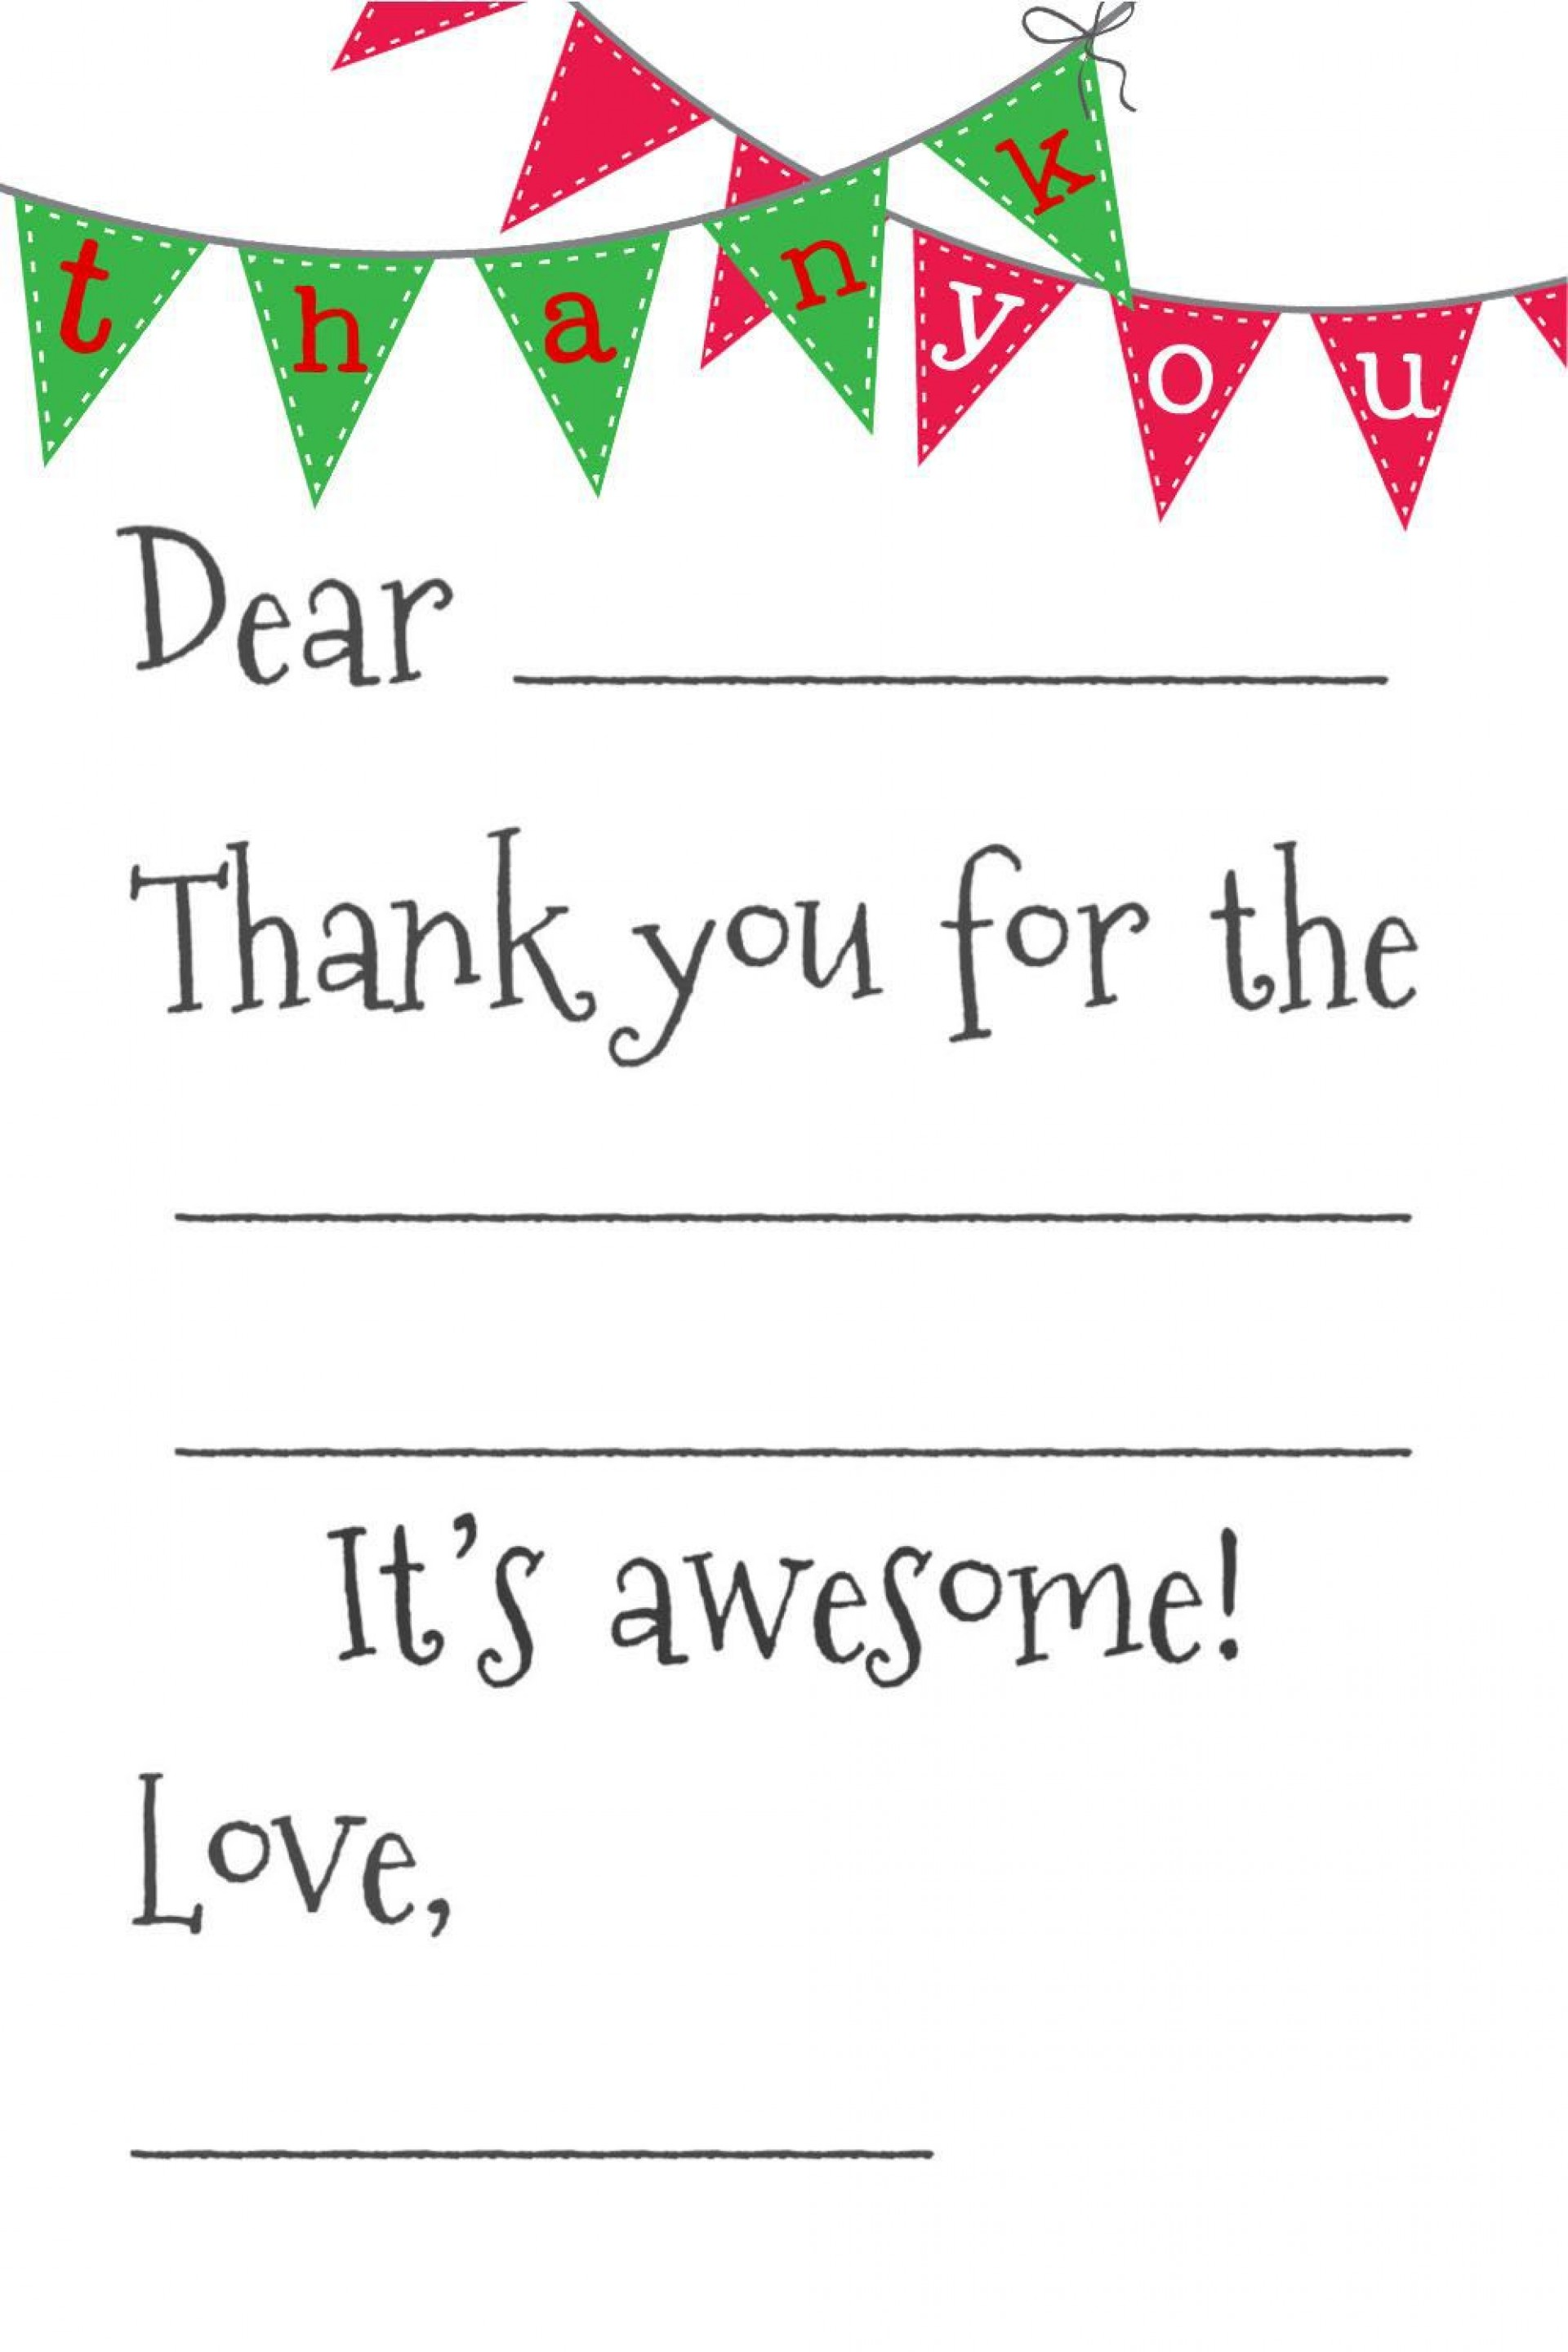 006 Marvelou Thank You Note Card Template Word Concept 1920